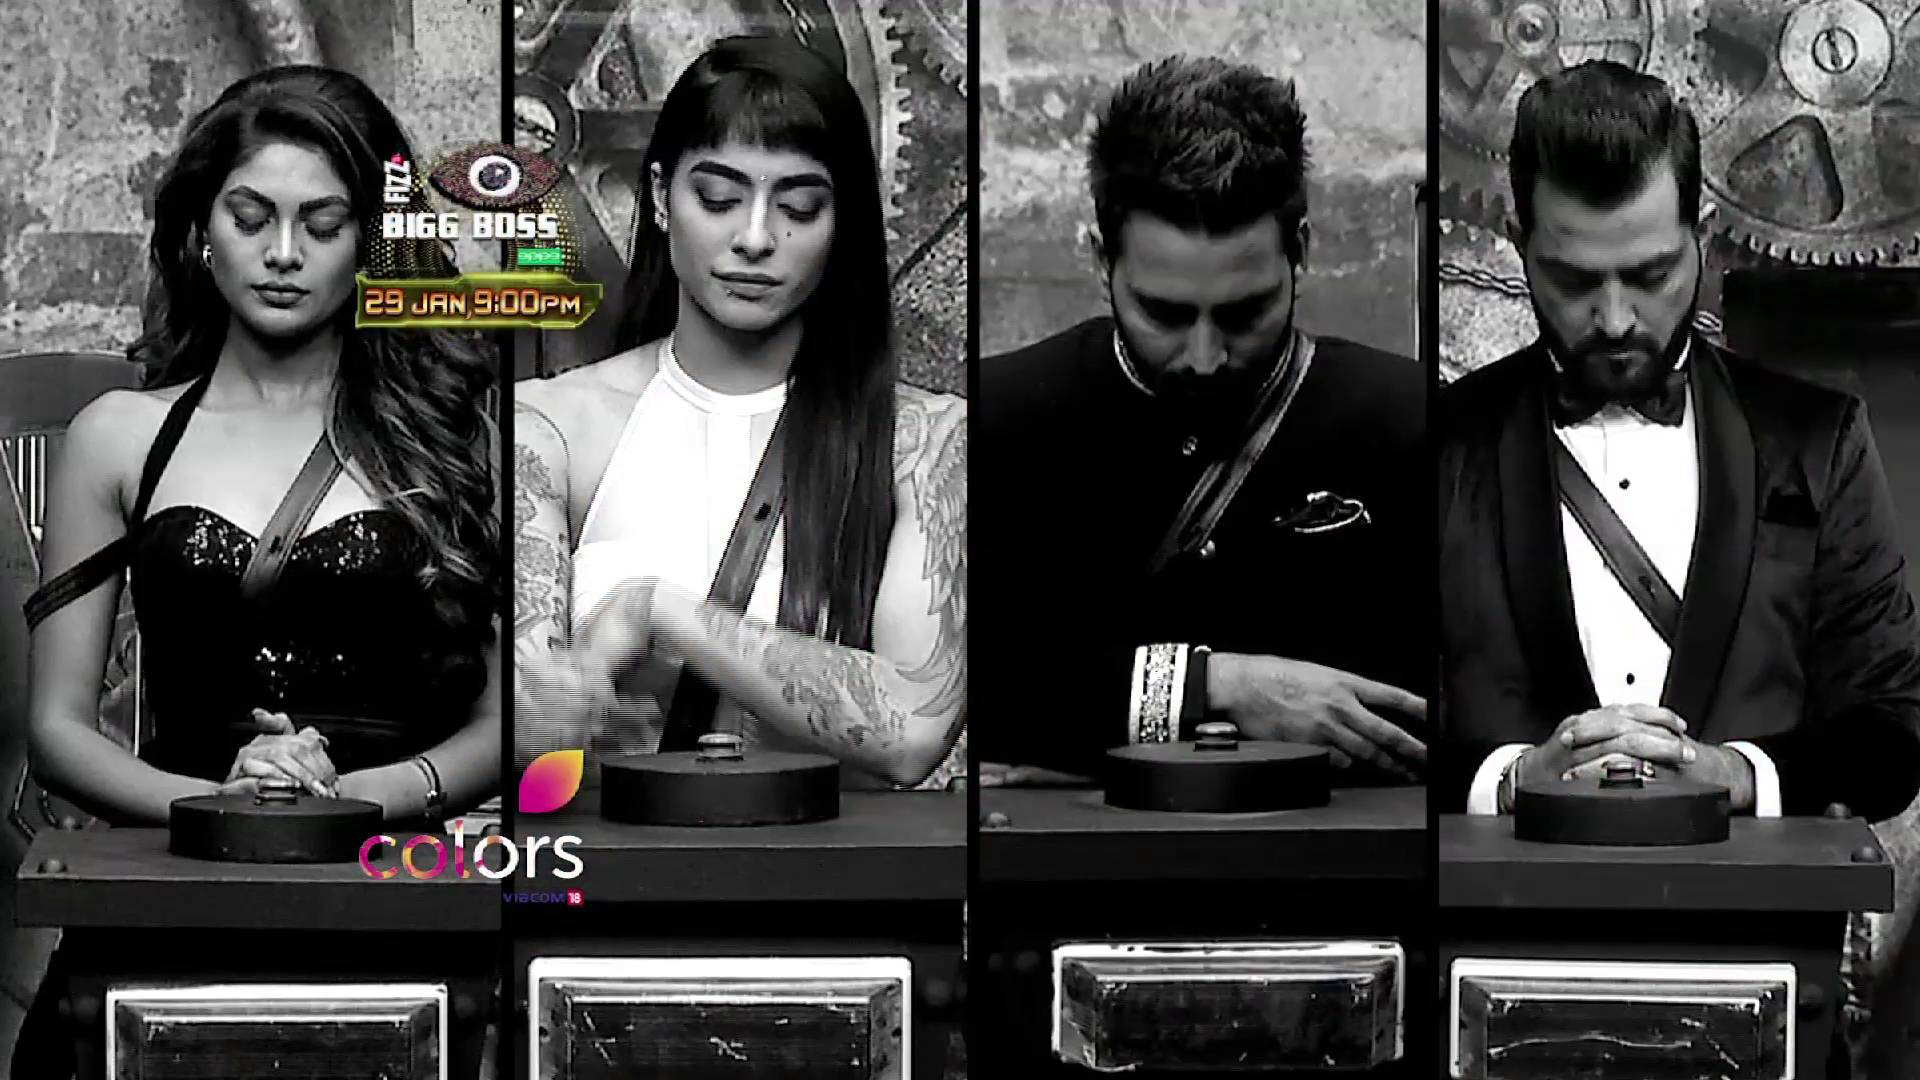 The finalists get an opportunity to get 10 lakh rupees on Bigg Boss 10!